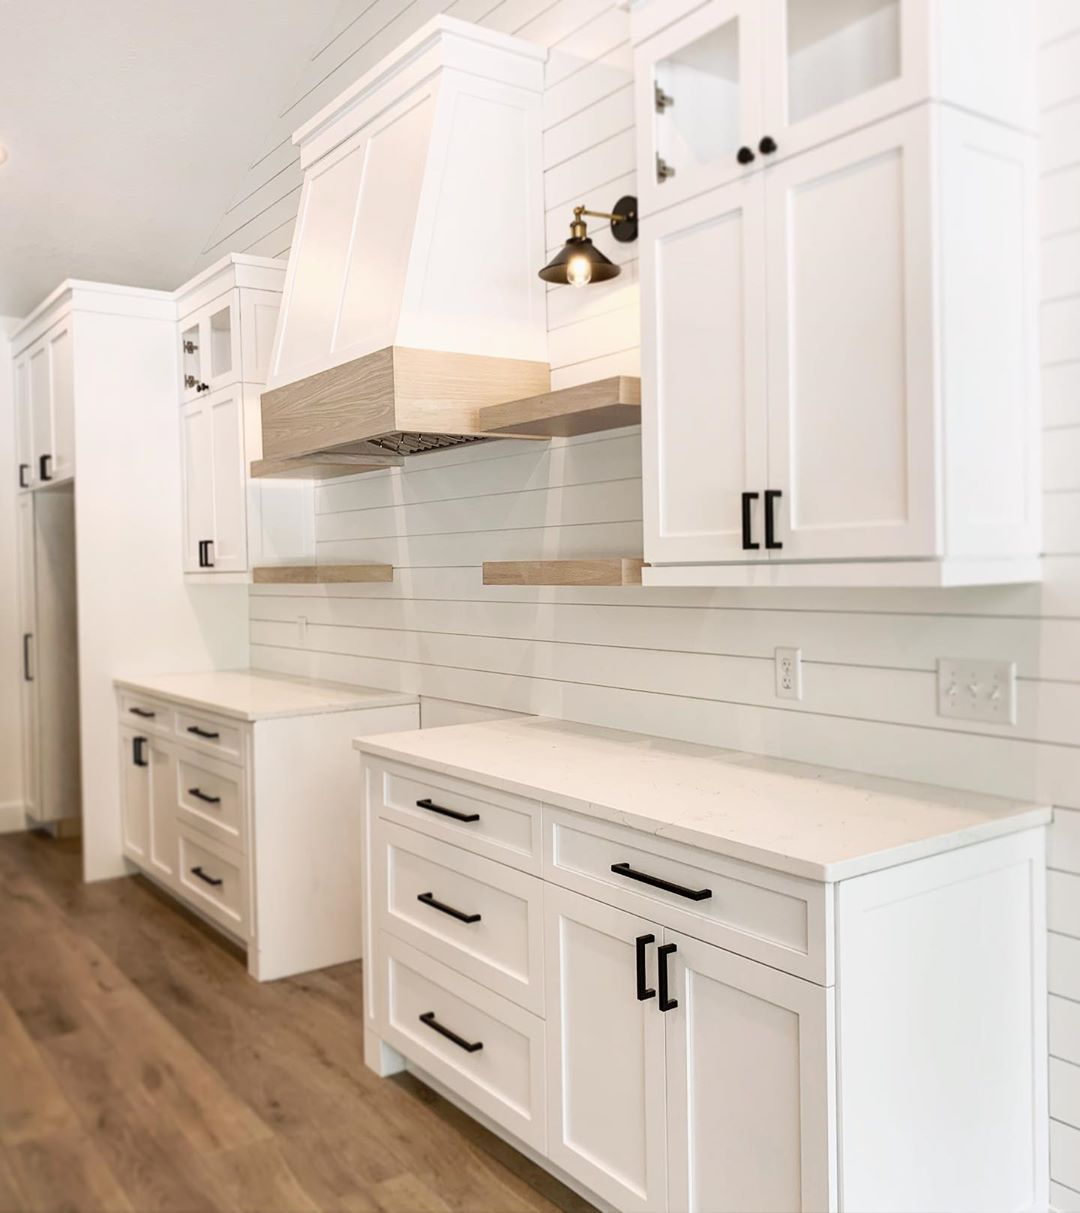 Isaiah Cully On Instagram Shiplap Floating Shelves White Cabinets Black Hardware Arm In 2020 Backsplash For White Cabinets Modern Farmhouse Kitchens Home